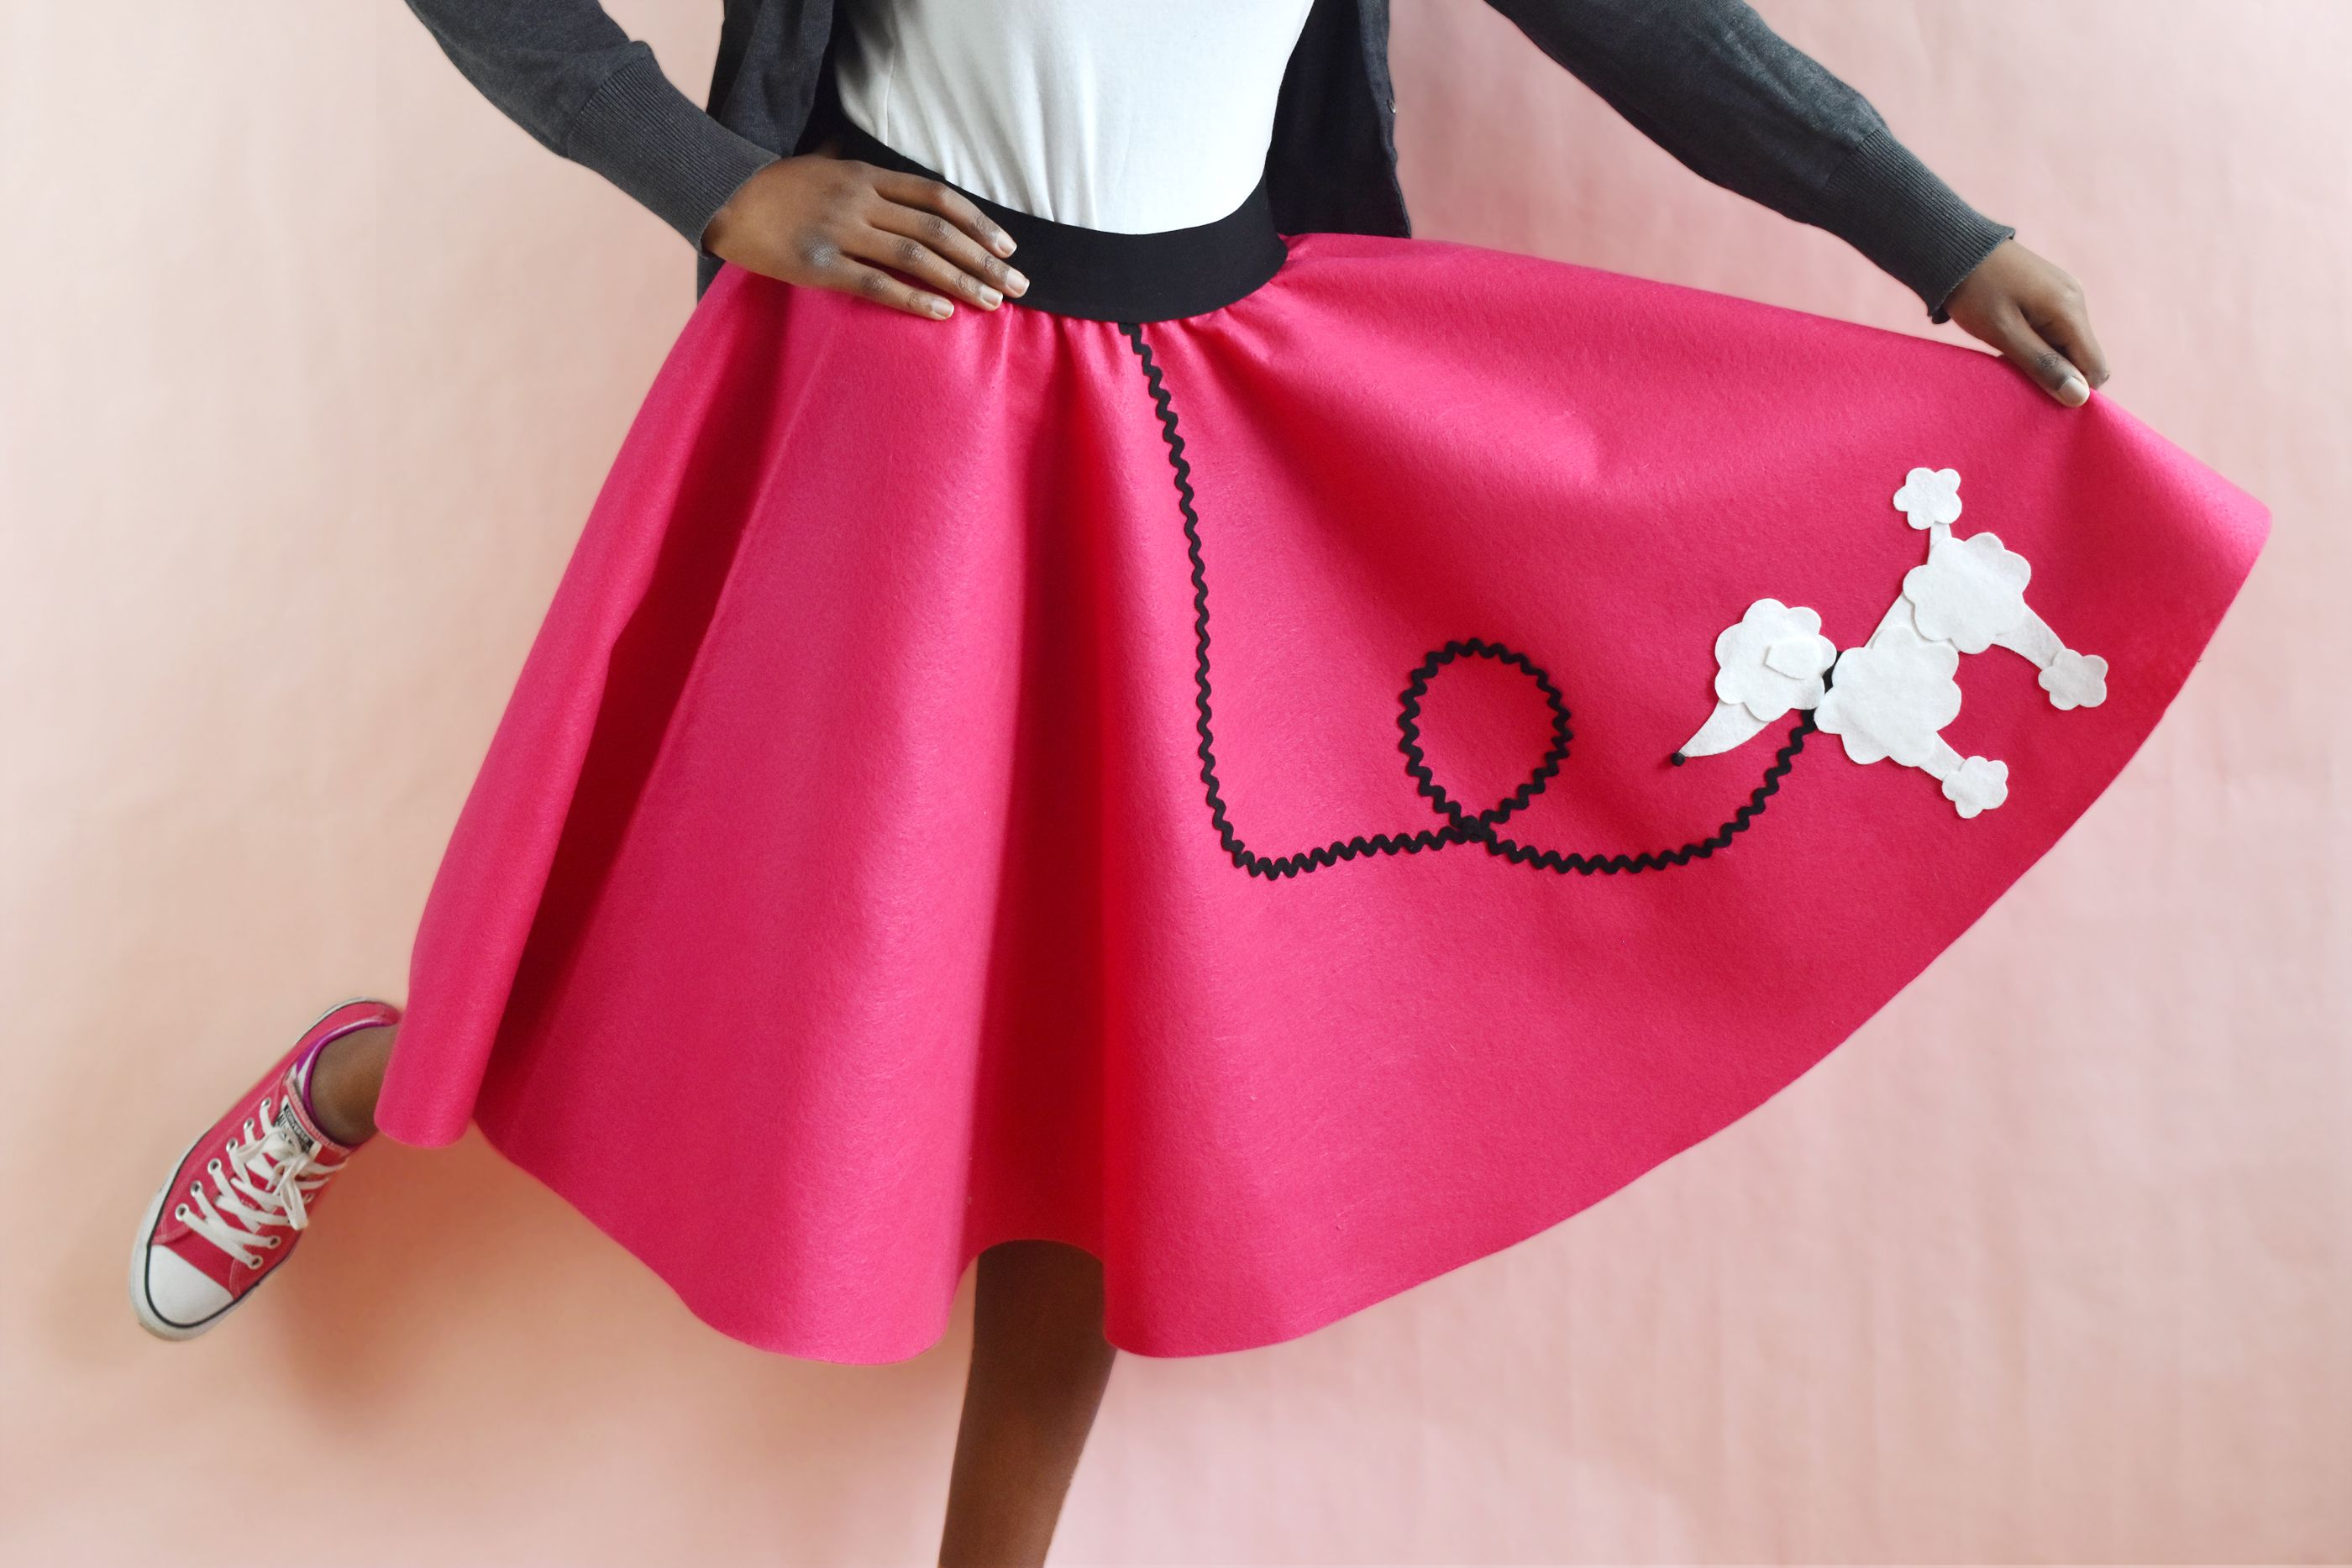 How To Make An Easy Sew Poodle Skirt